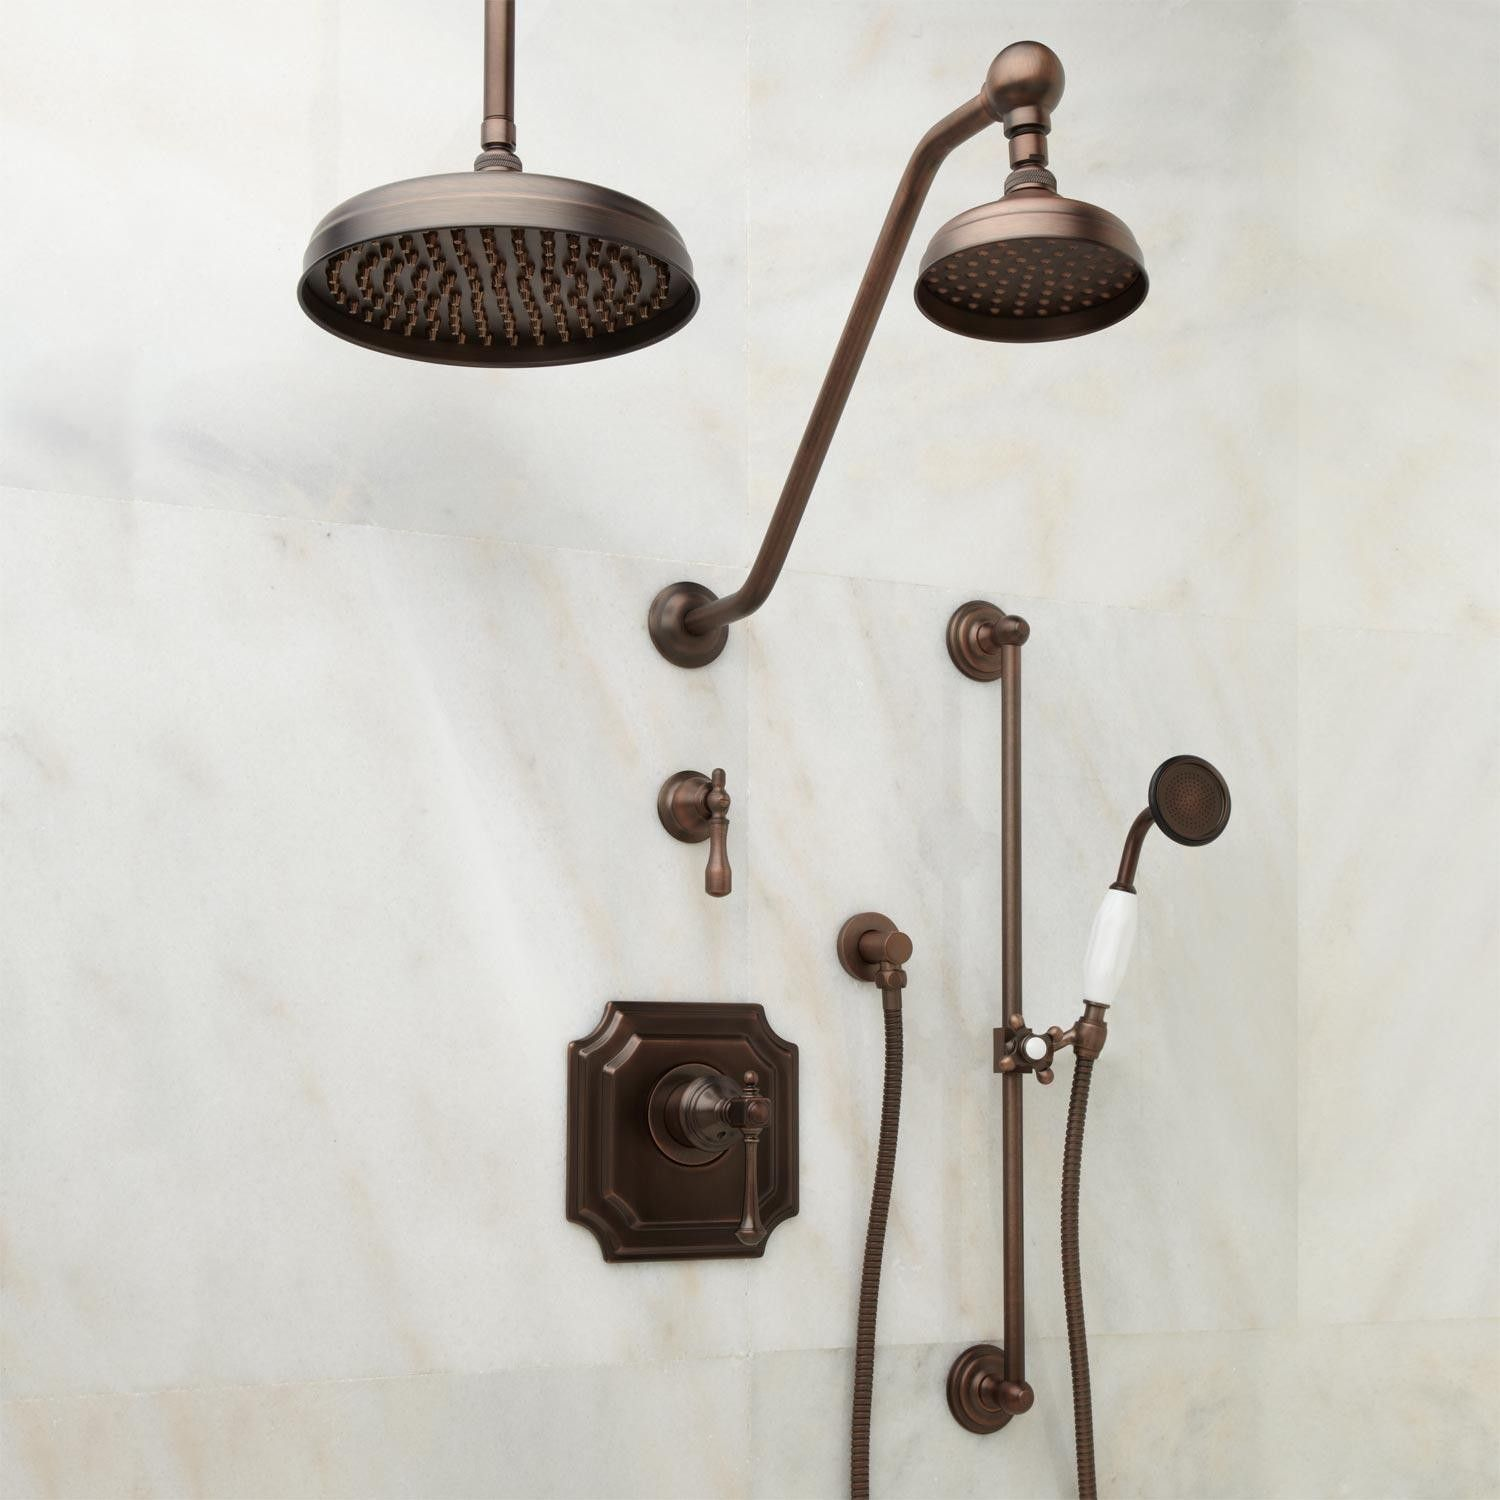 Vintage Pressure Balance Shower System - Dual Shower Heads and Hand ...